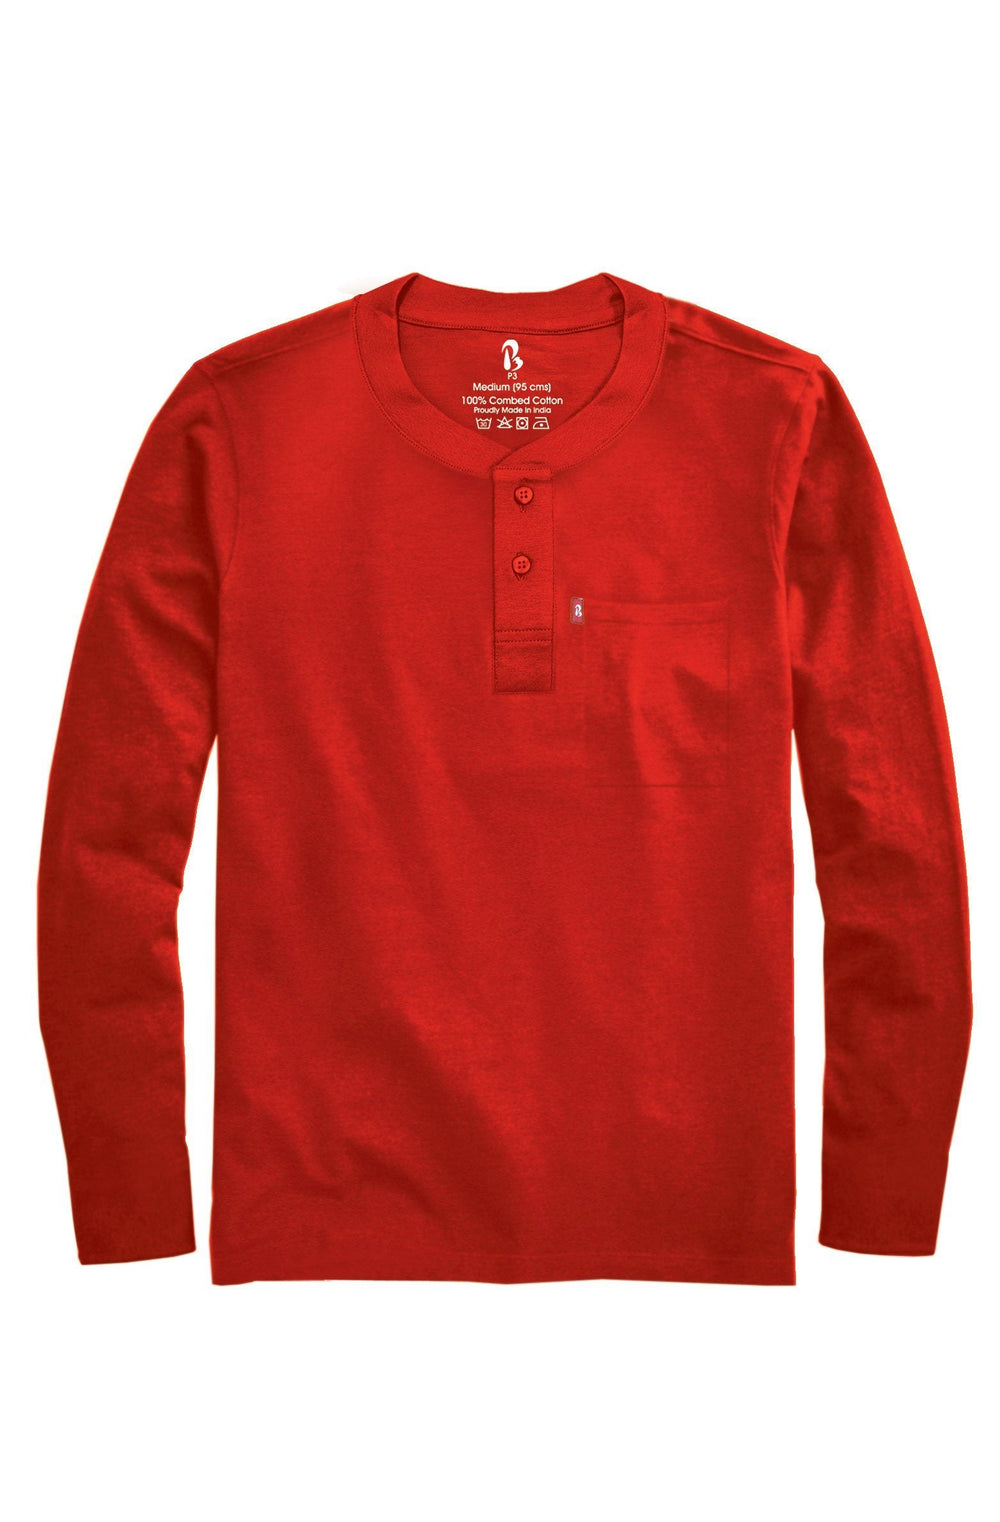 Jester Red Ribbed Henley (Full Sleeved) Ribbed Henleys P3 90 cms (SMALL) Jester Red